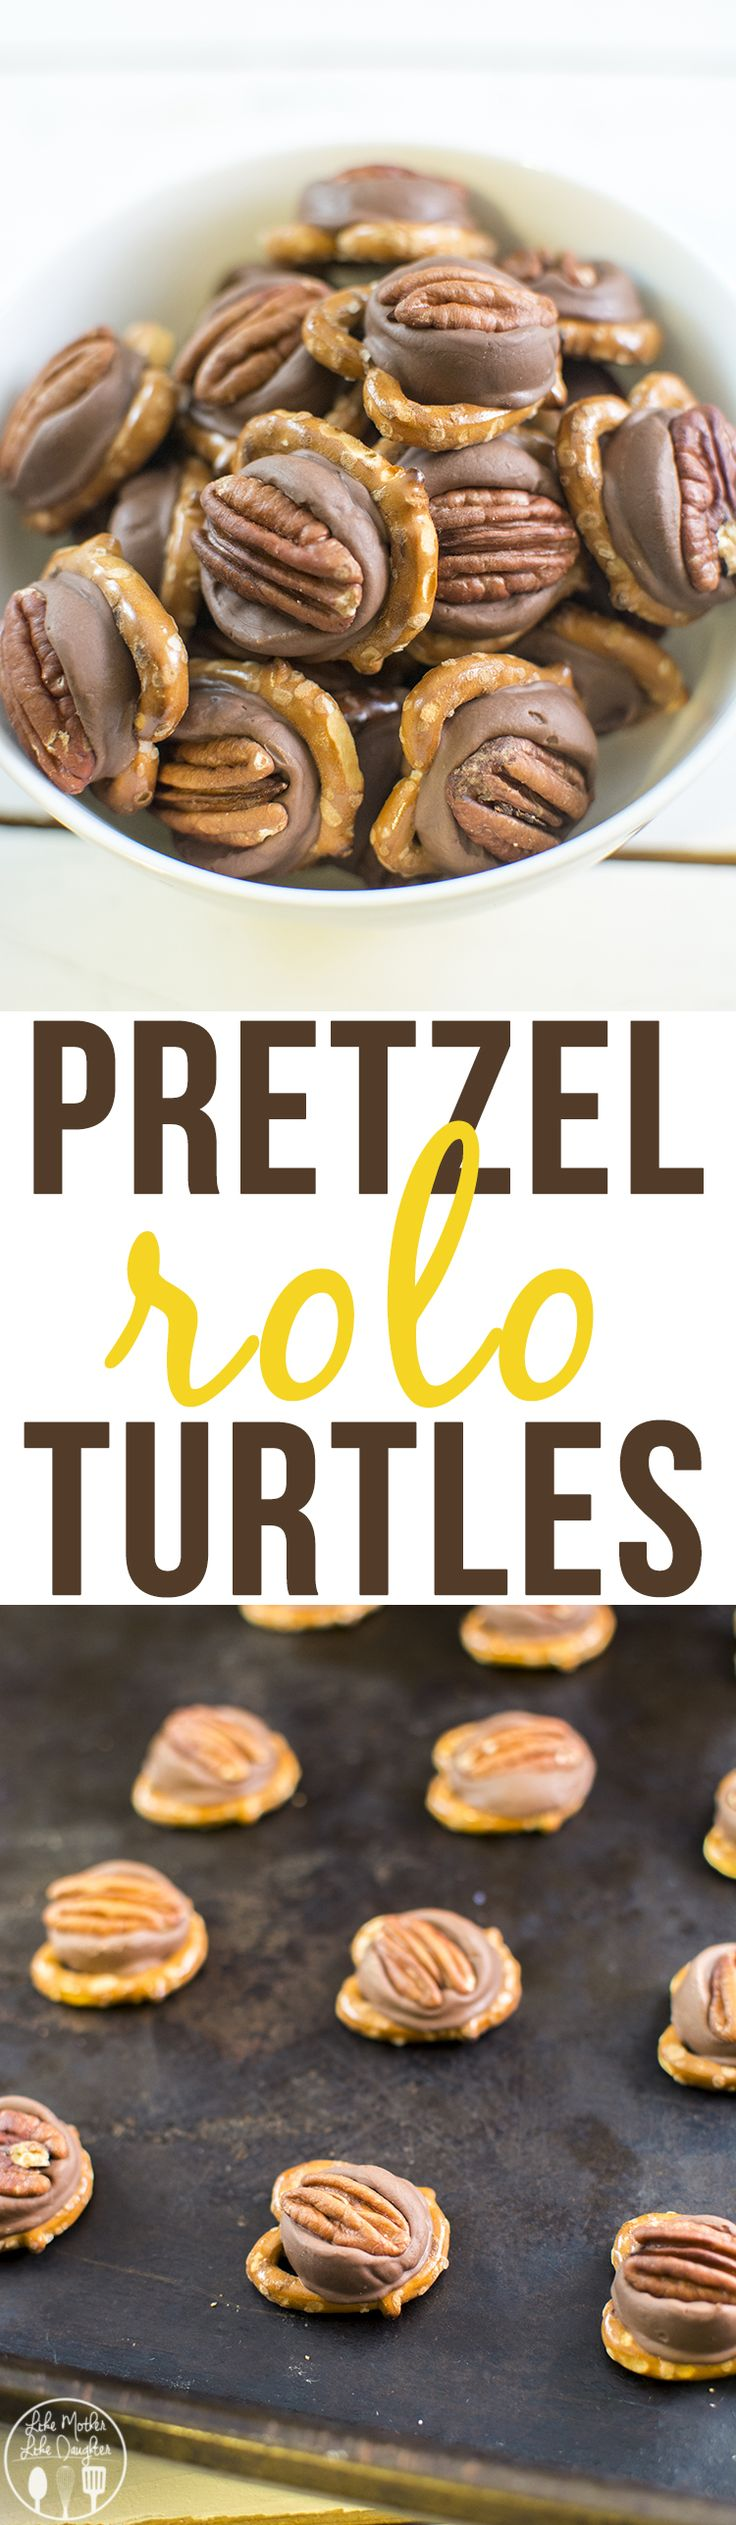 Pretzel Rolo Turtles - these tasty and cute pretzel rolo turtles are only 3 ingredients, take less than 10 minutes to make, and are a perfect sweet and salty treat.